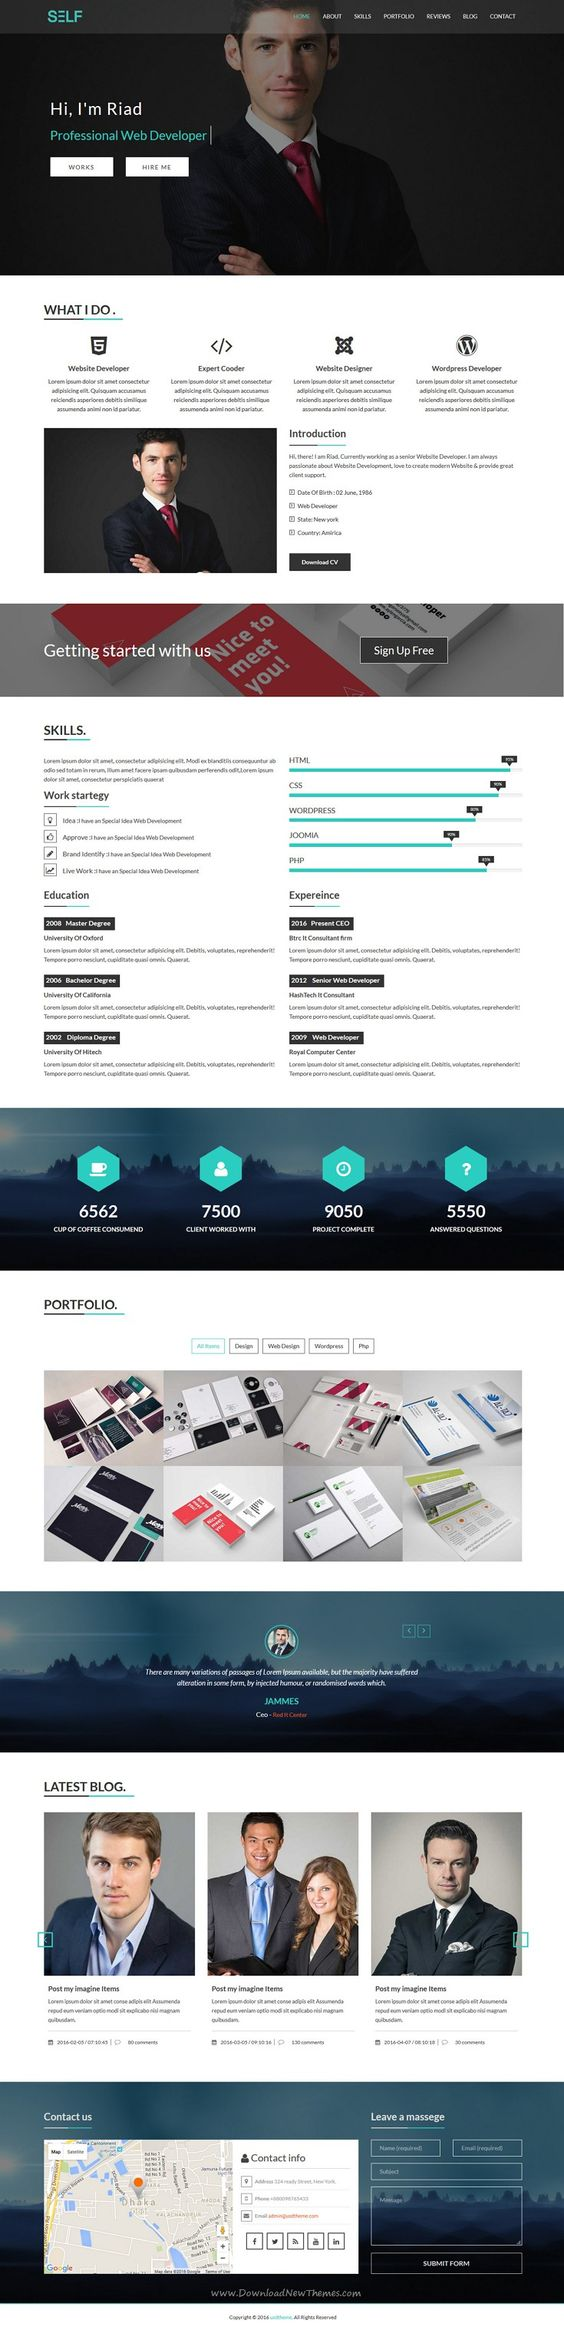 Self is a clean and elegant design bootstrap HTML #template for One Page #Portfolio and #Resume #CV template. Download Now!